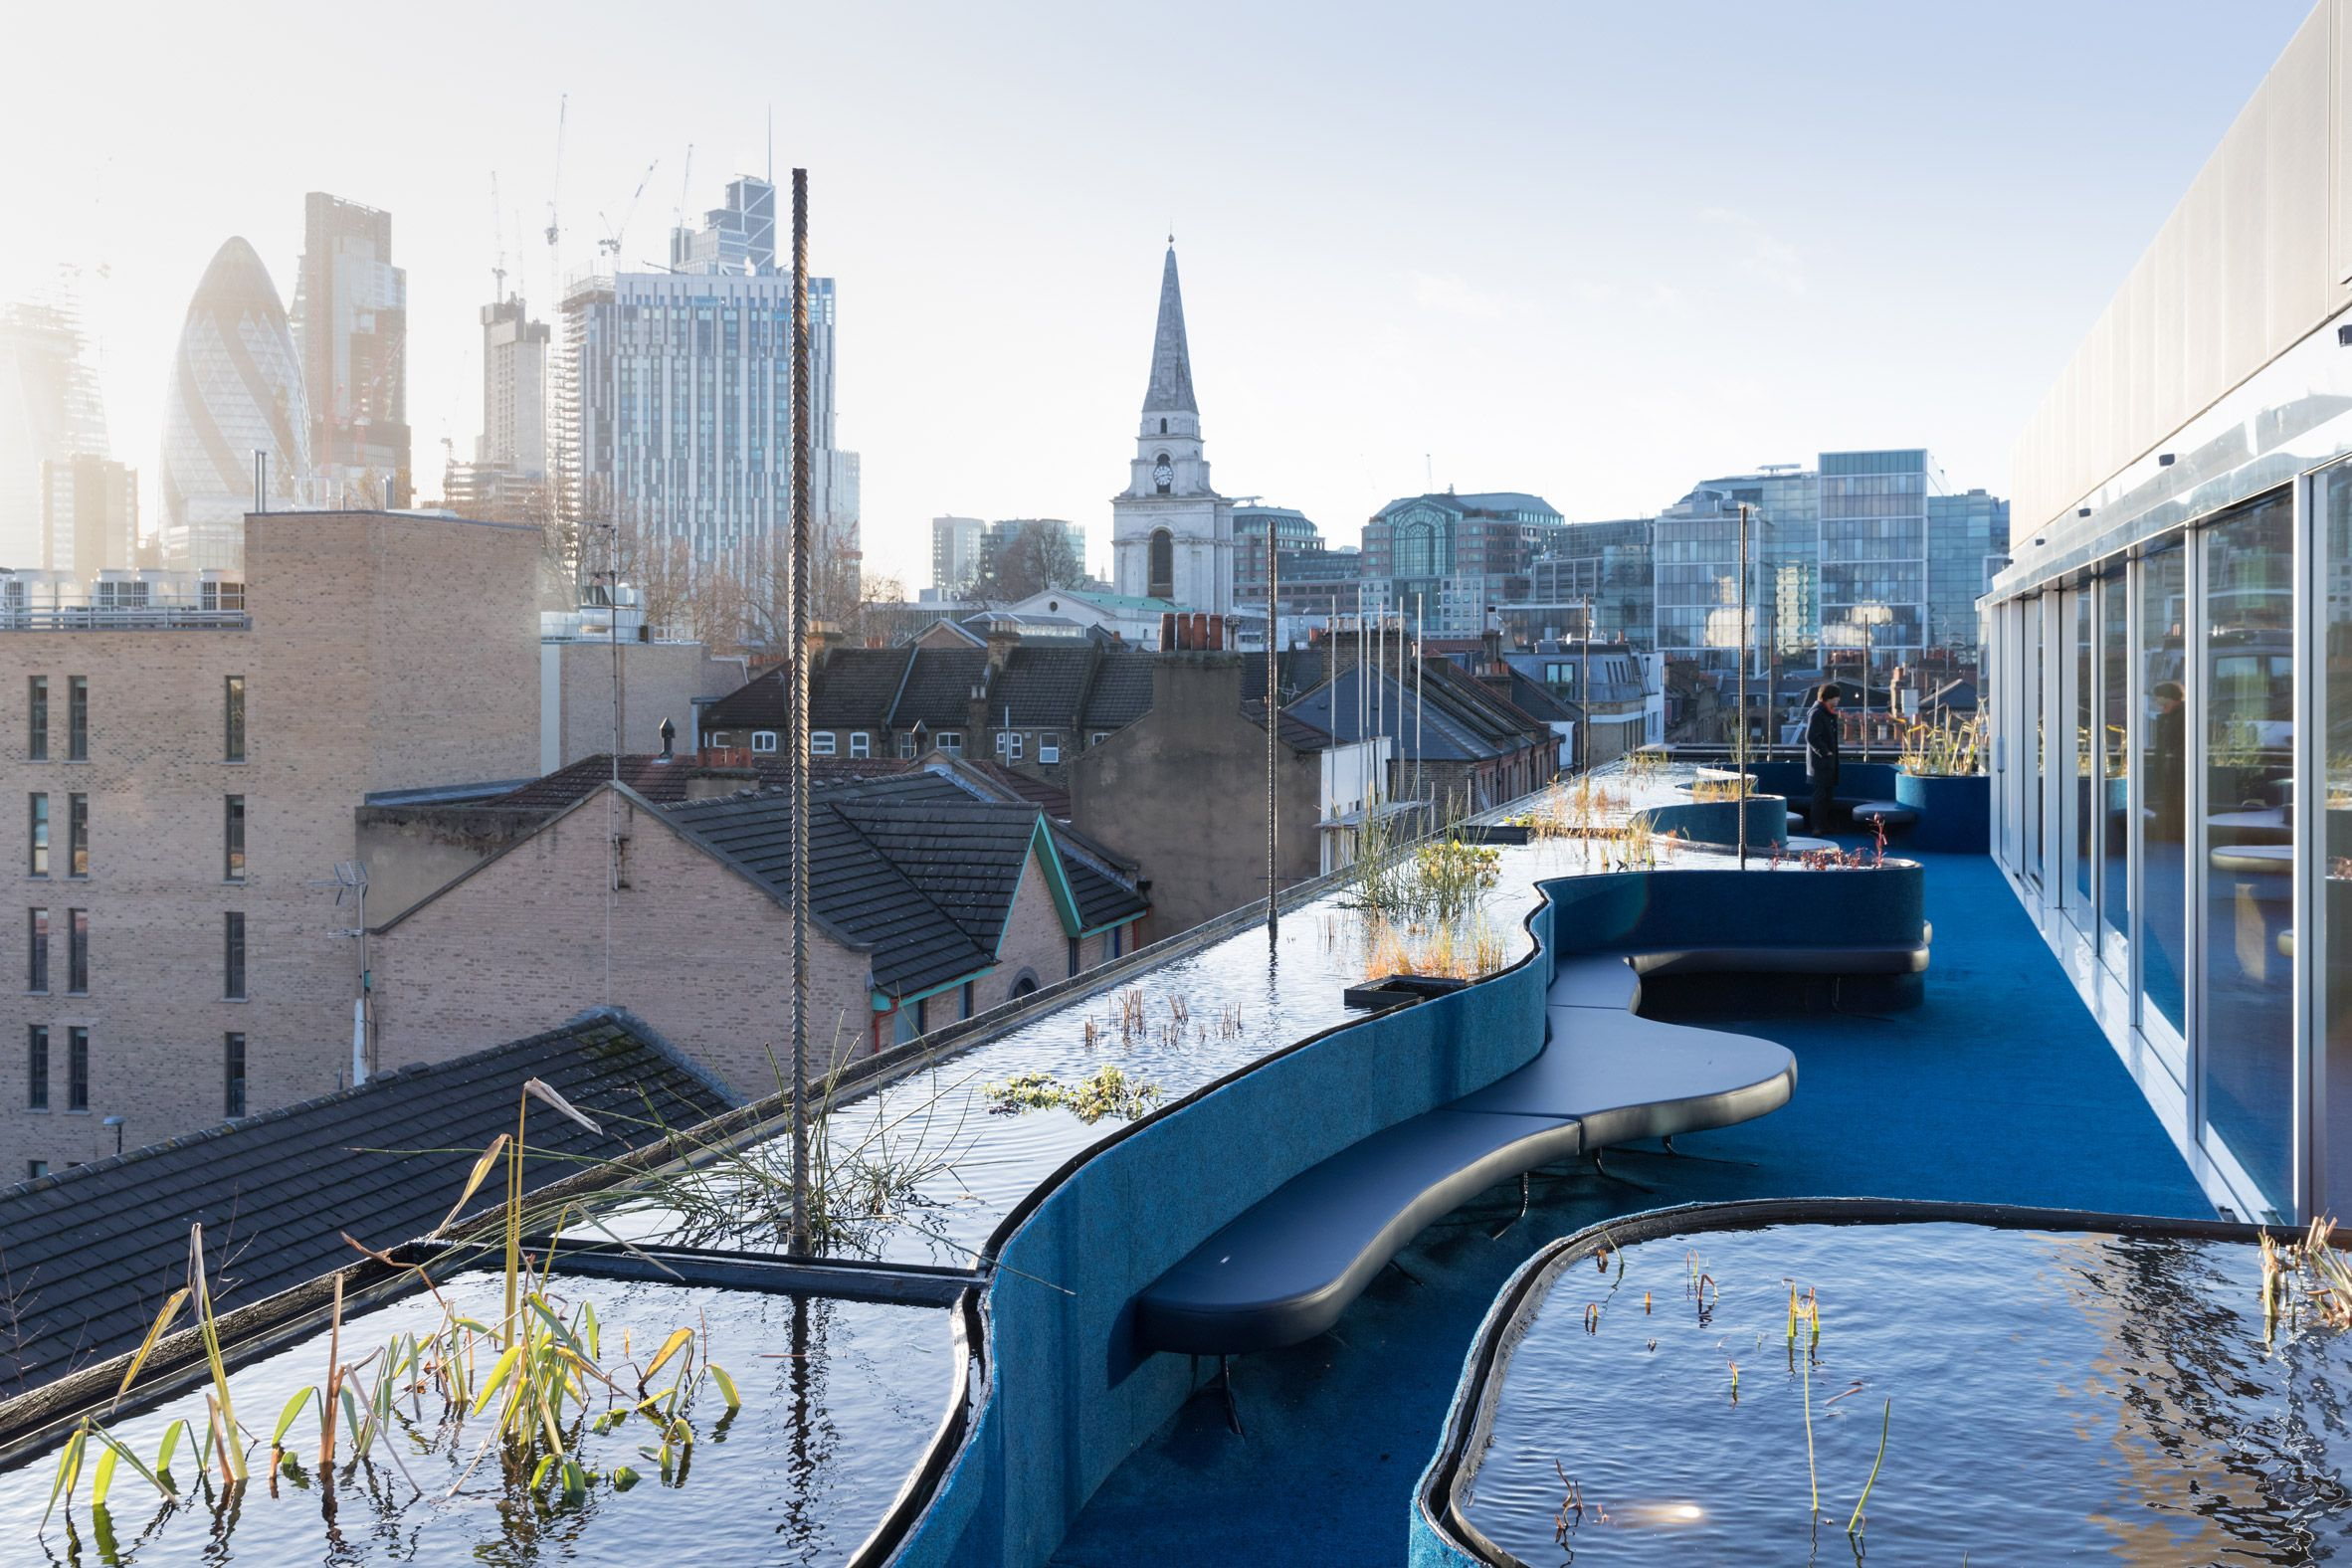 Selgascano Adds Roof Extension With Pools And Plants To Second Home Offices In London London Buildings Roof Architecture Pergola Plans